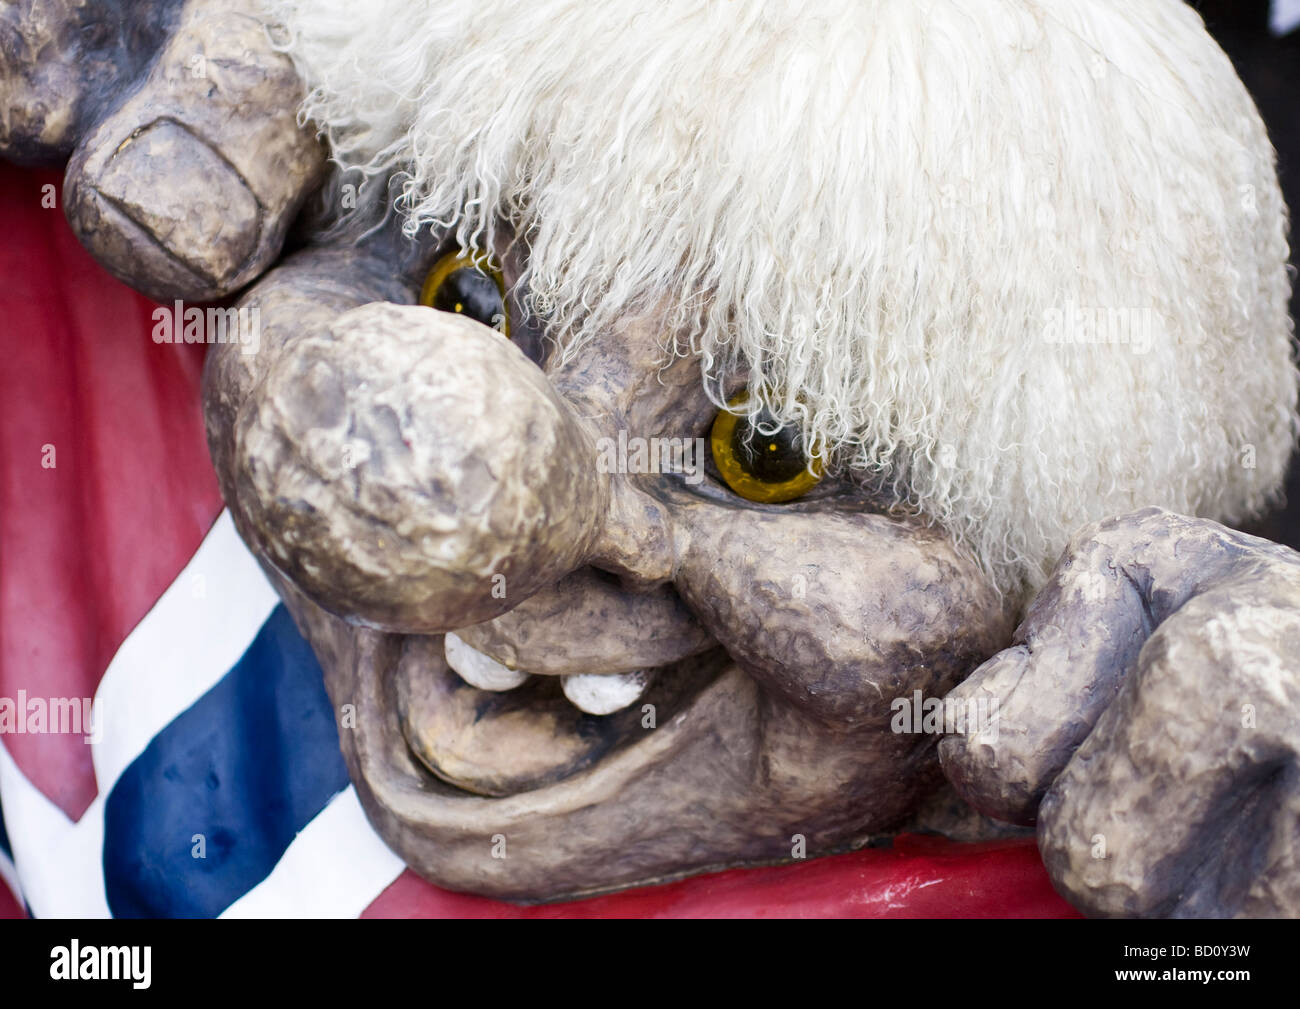 A norweigan national treasure, the Troll - Stock Image